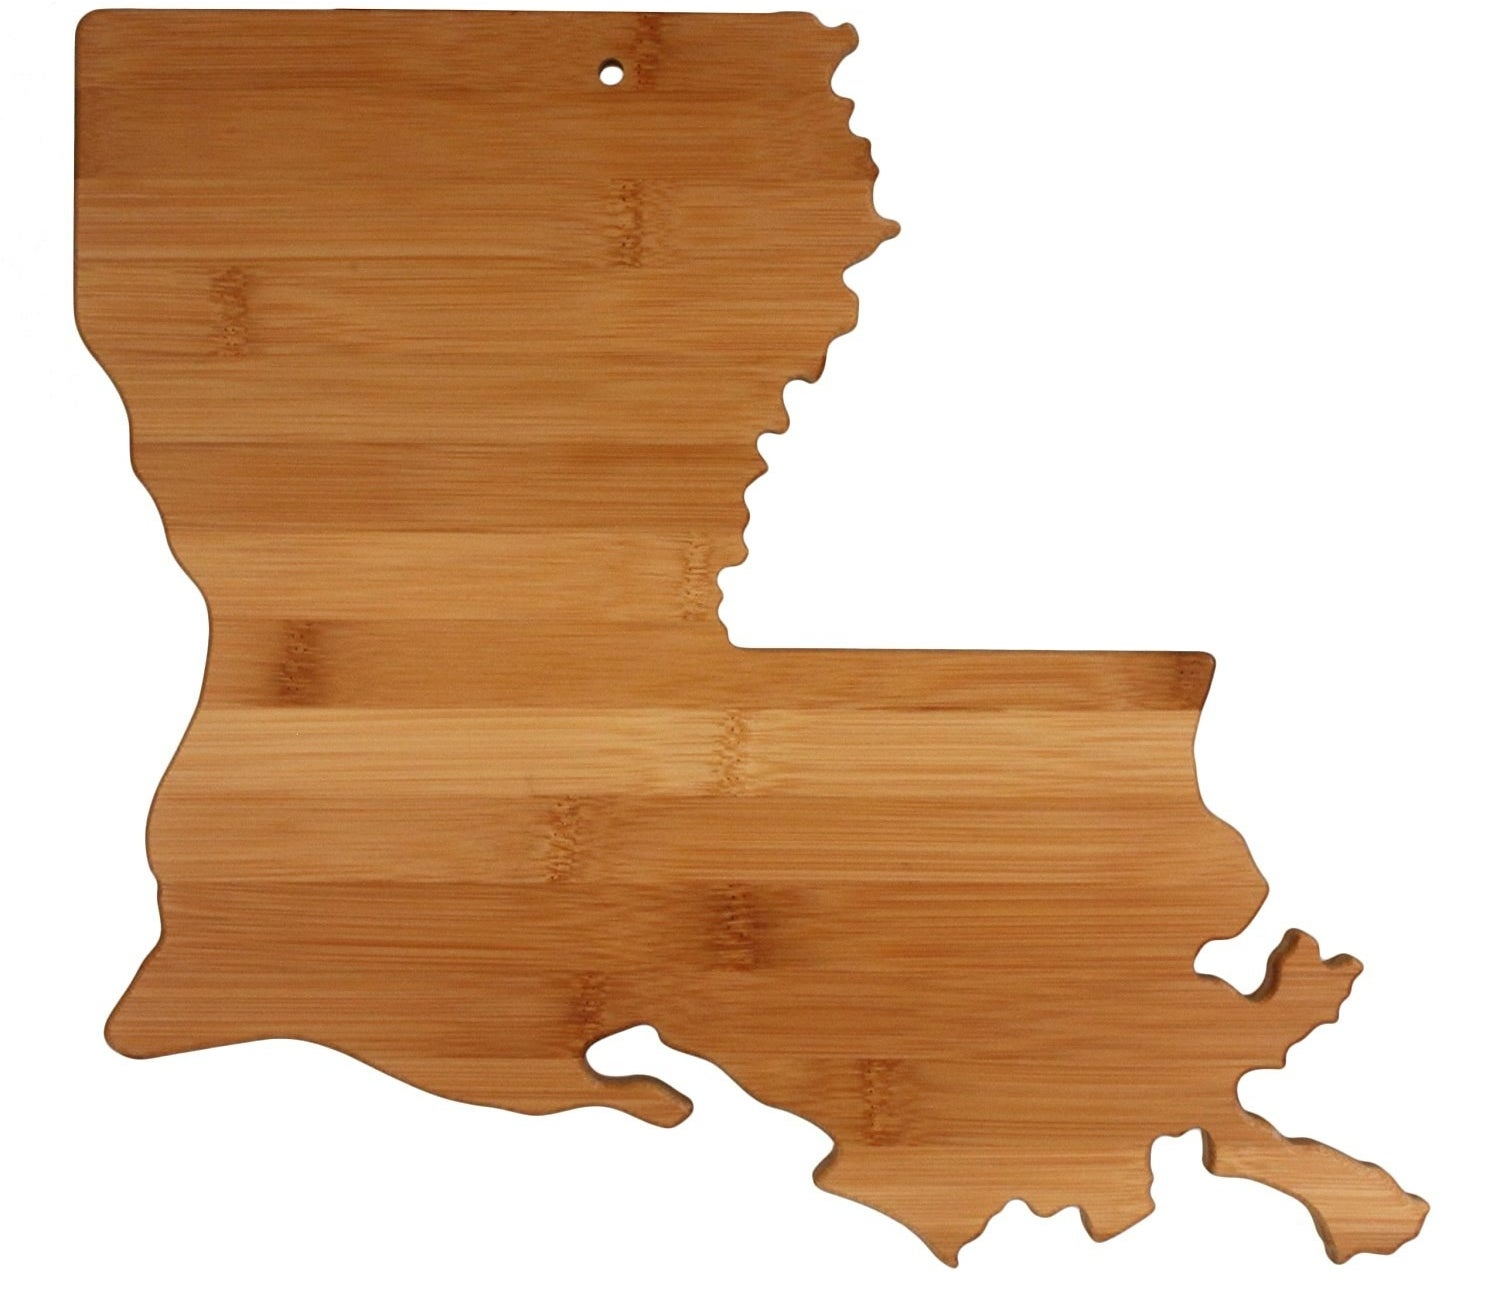 """Promising review: """"I absolutely adore this cutting board. I'm from Maine originally, but I moved to Los Angeles two and a half years ago. My boyfriend and I wanted a taste of home in our first home together. This cutting board is not only an adorable and chic decorative piece, it's also quite functional and useful."""" —Carolyn_GPrice: $19.99 (available in all 50 states)"""